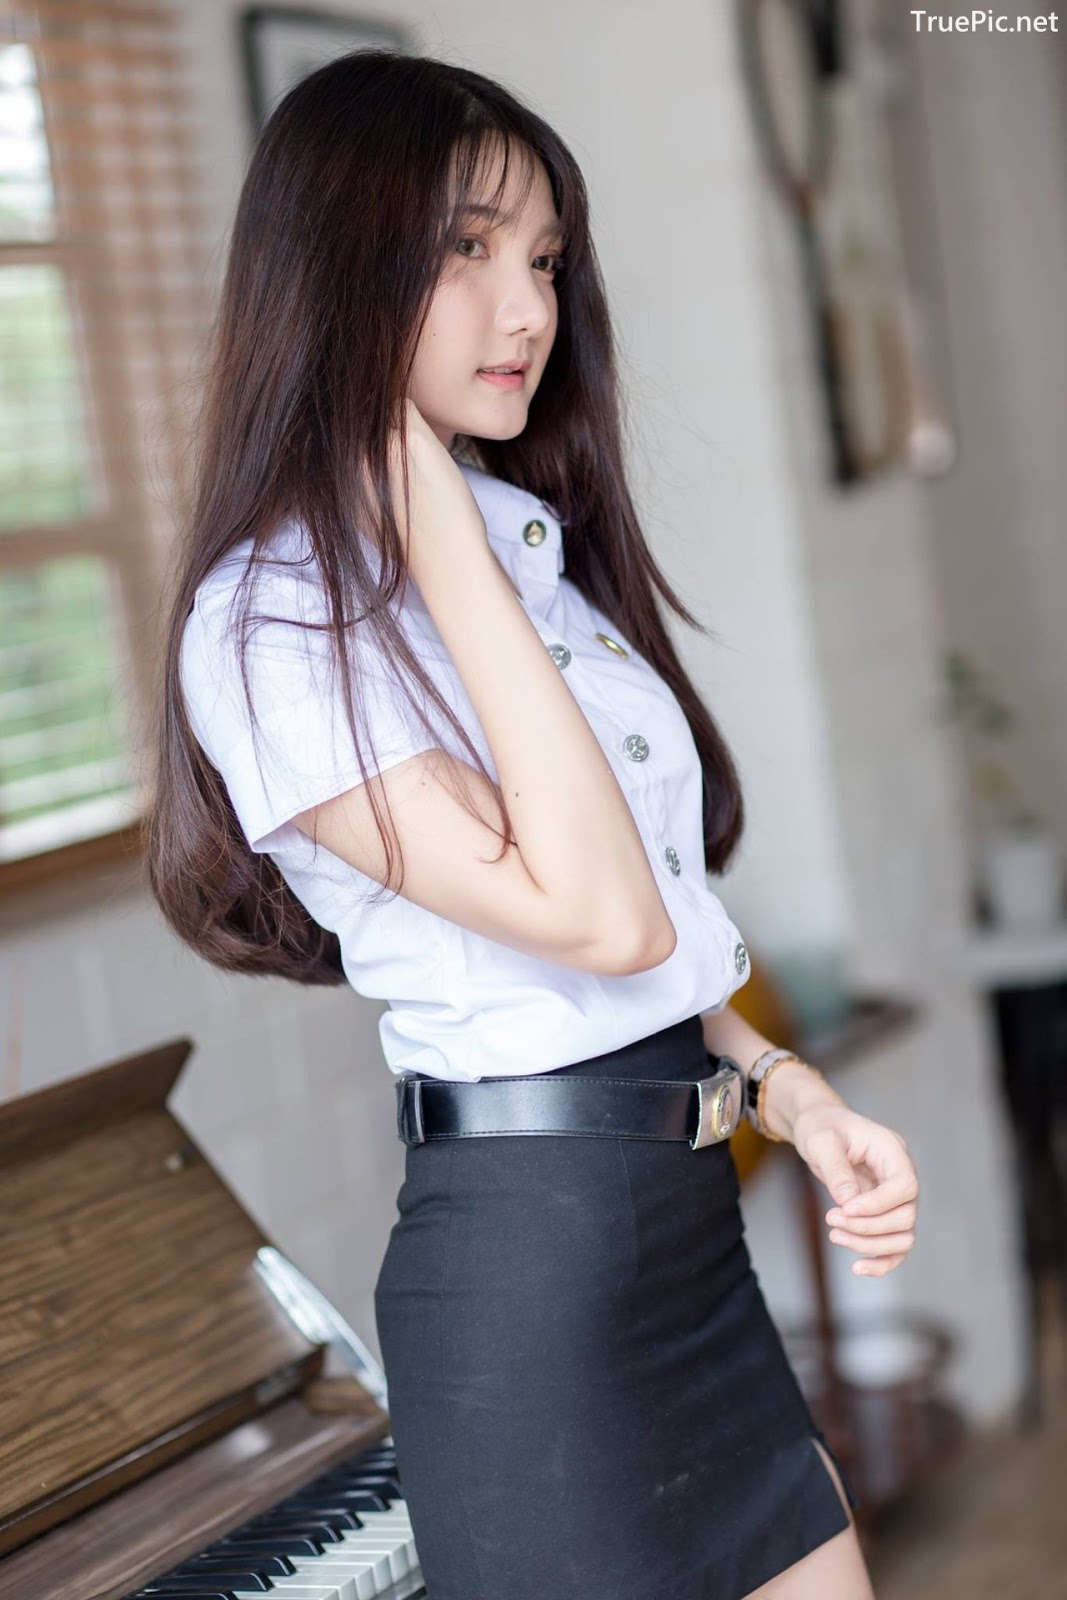 Image-Thailand-Cute-Model-Creammy-Chanama-Concept-Innocent-Student-Girl-TruePic.net- Picture-5